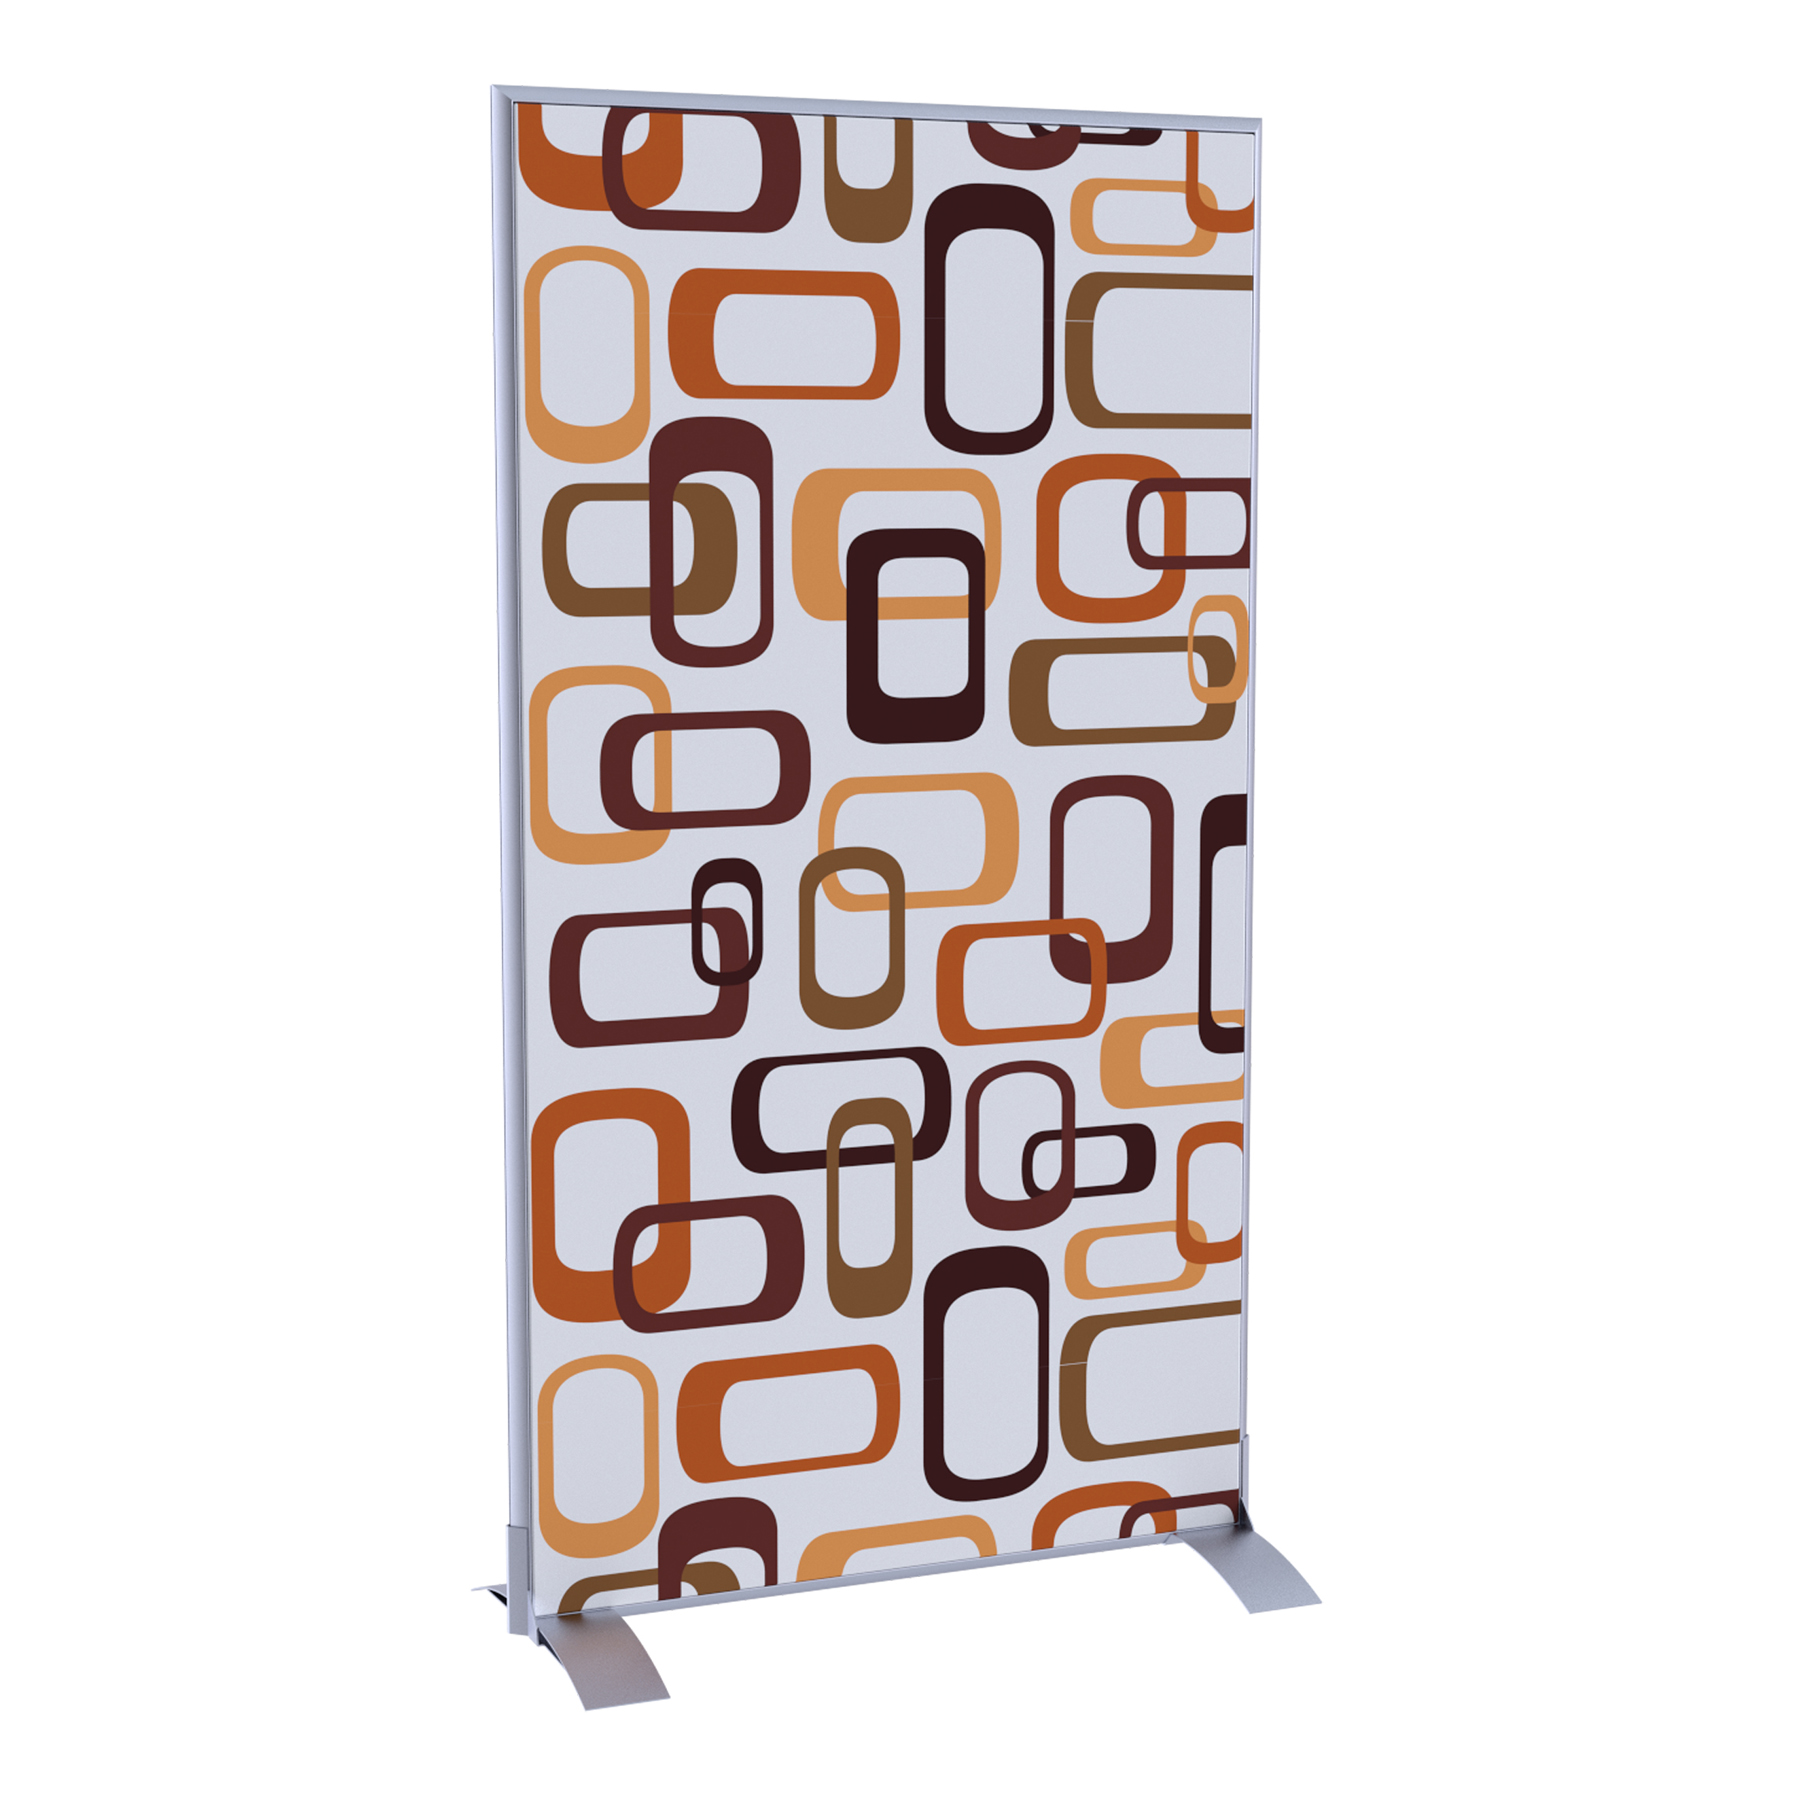 Paperflow EasyScreen Vertical Divider Screen, Interlocking Ovals